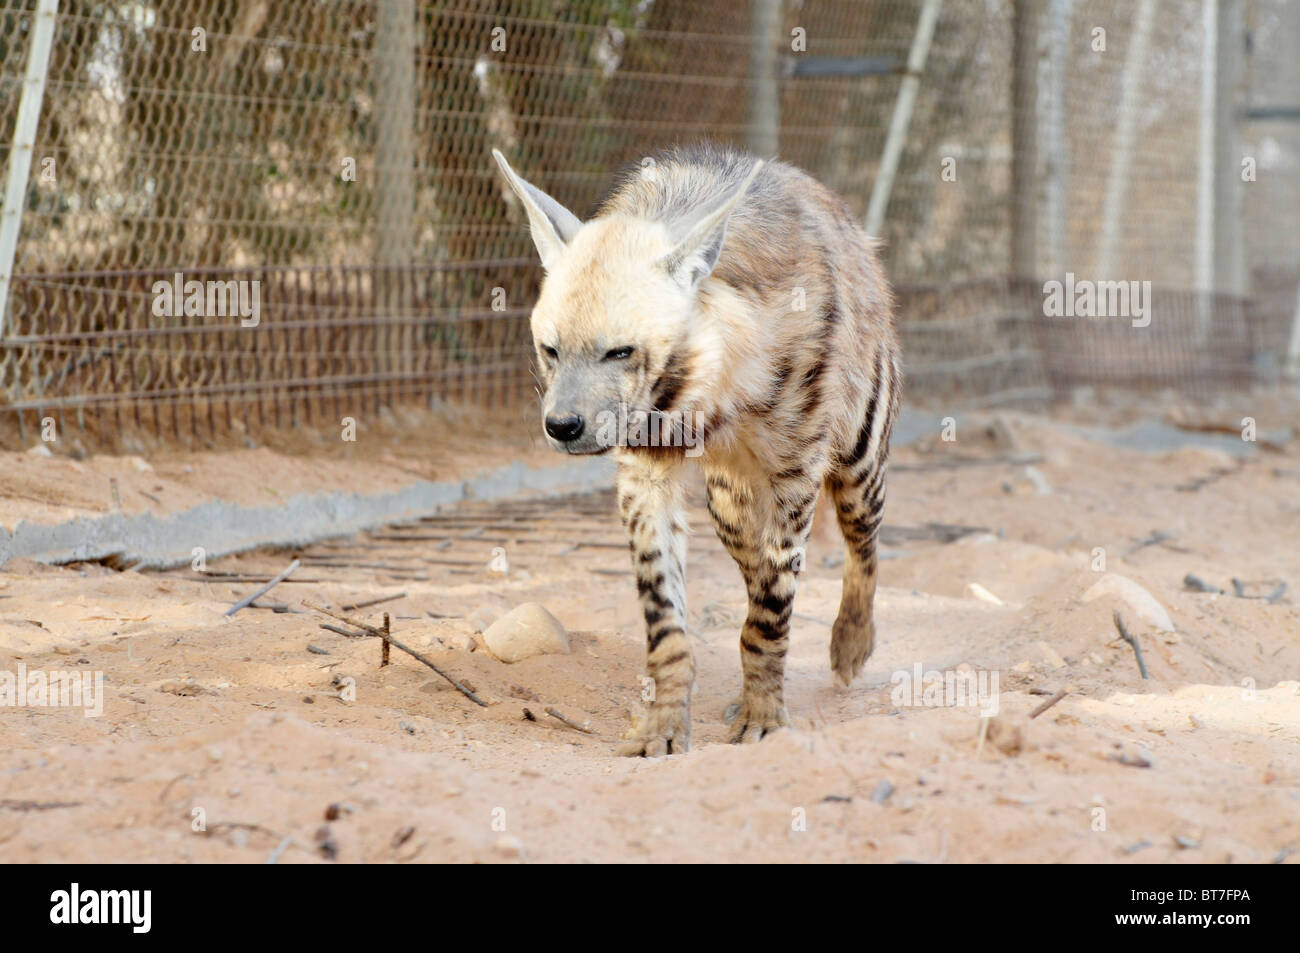 http://c8.alamy.com/comp/BT7FPA/israel-aravah-the-yotvata-hai-bar-nature-reserve-breeding-and-reacclimation-BT7FPA.jpg